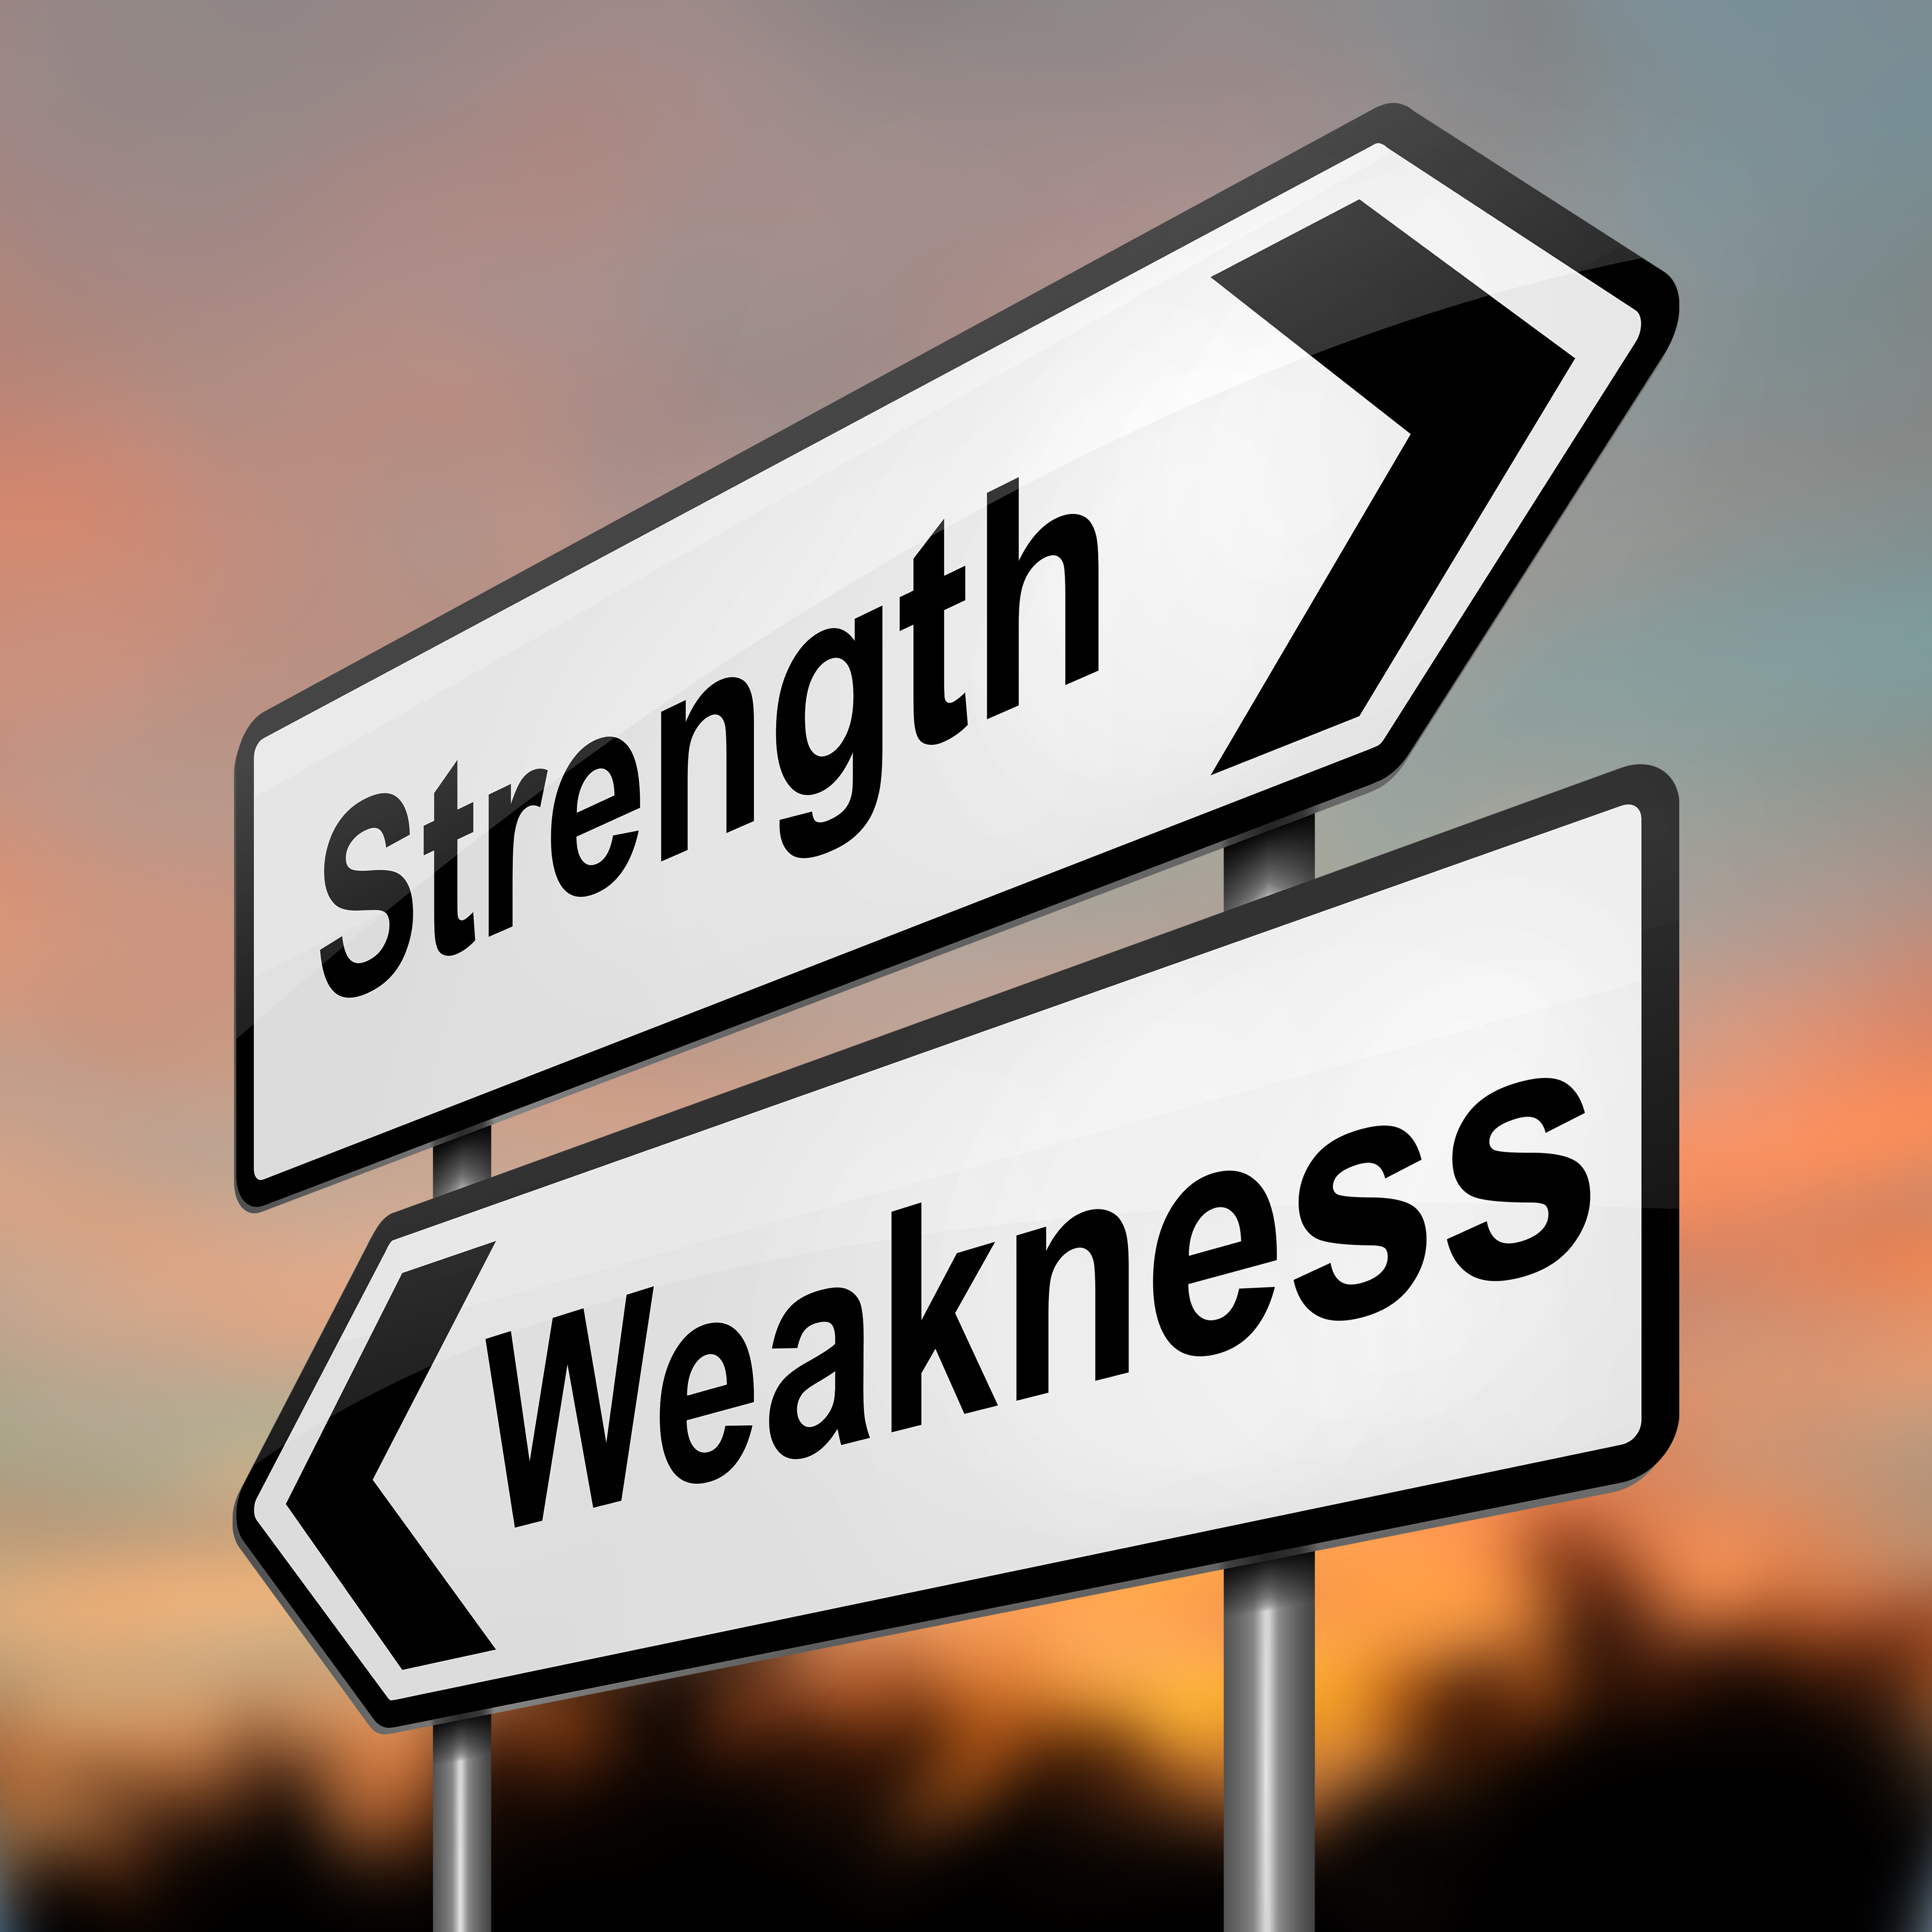 quotes about strength from weakness quotes